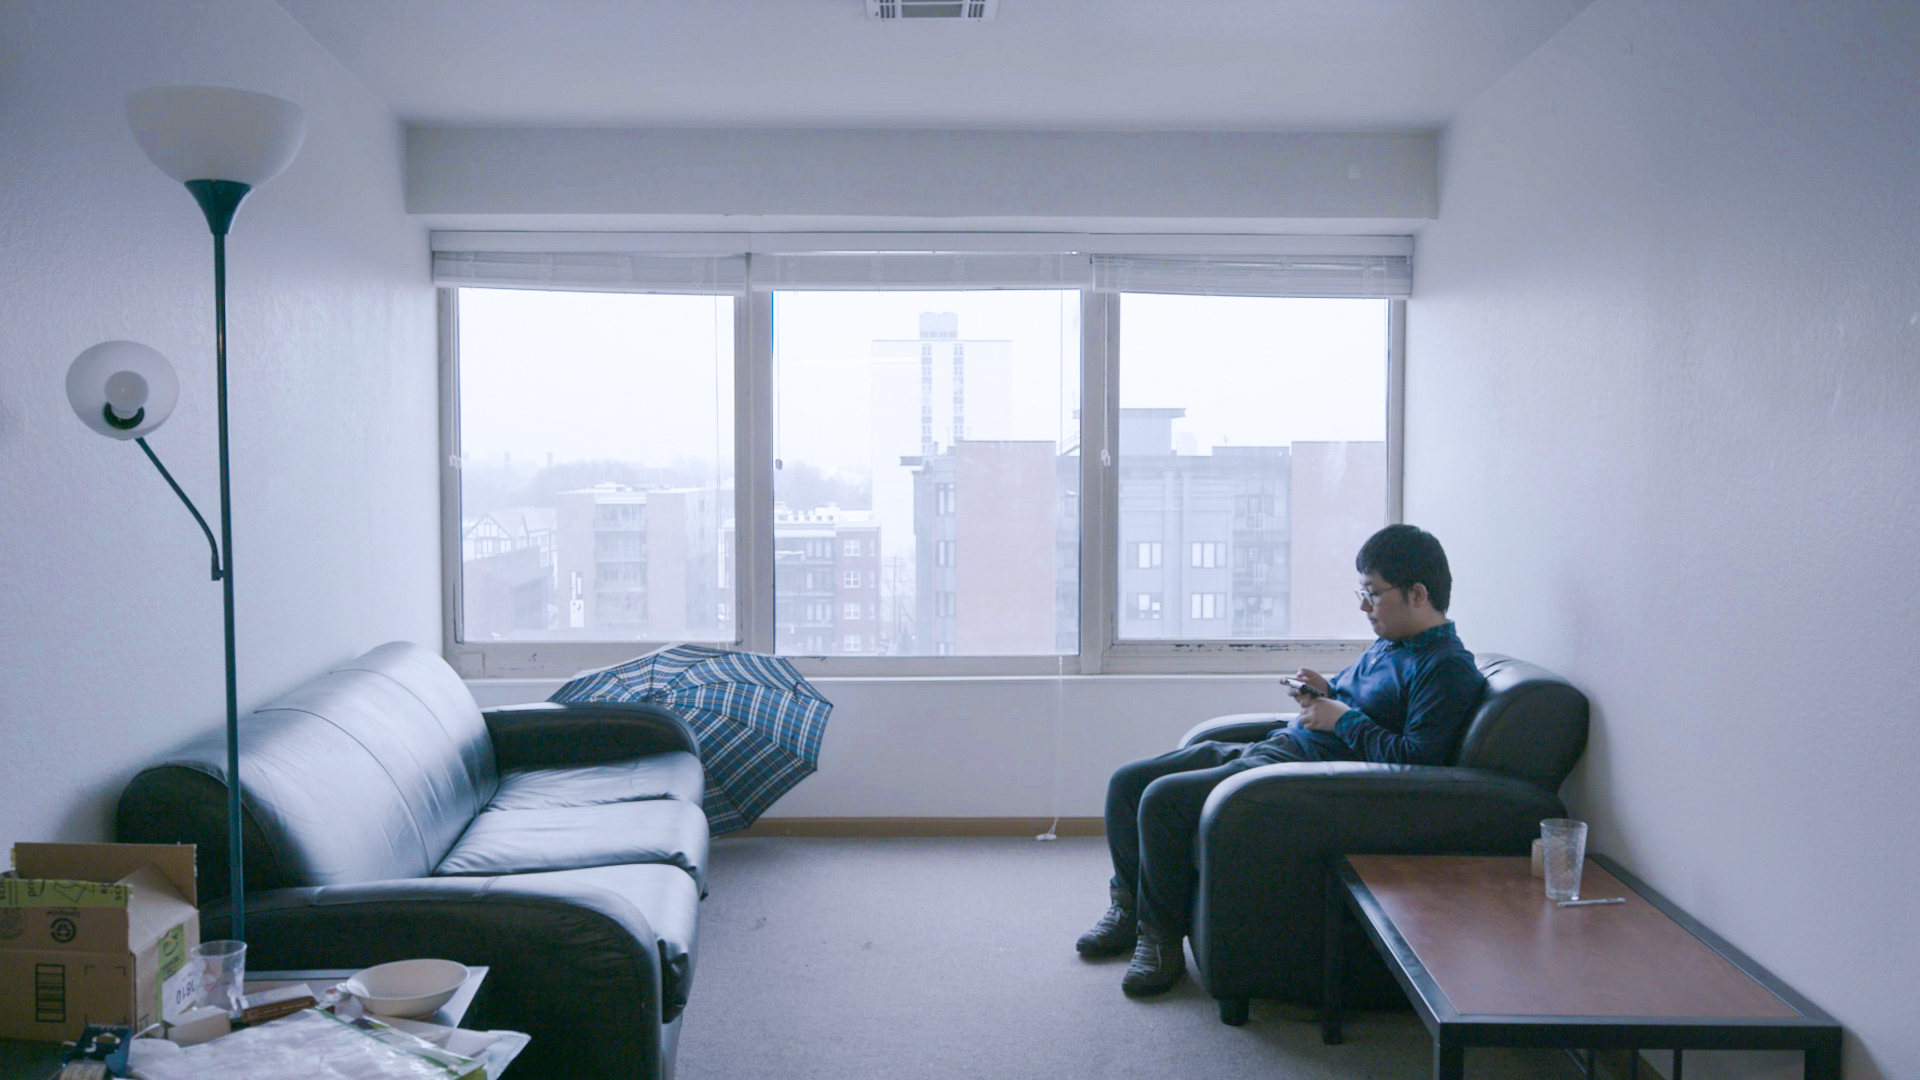 A Chinese student sitting in his livingroom